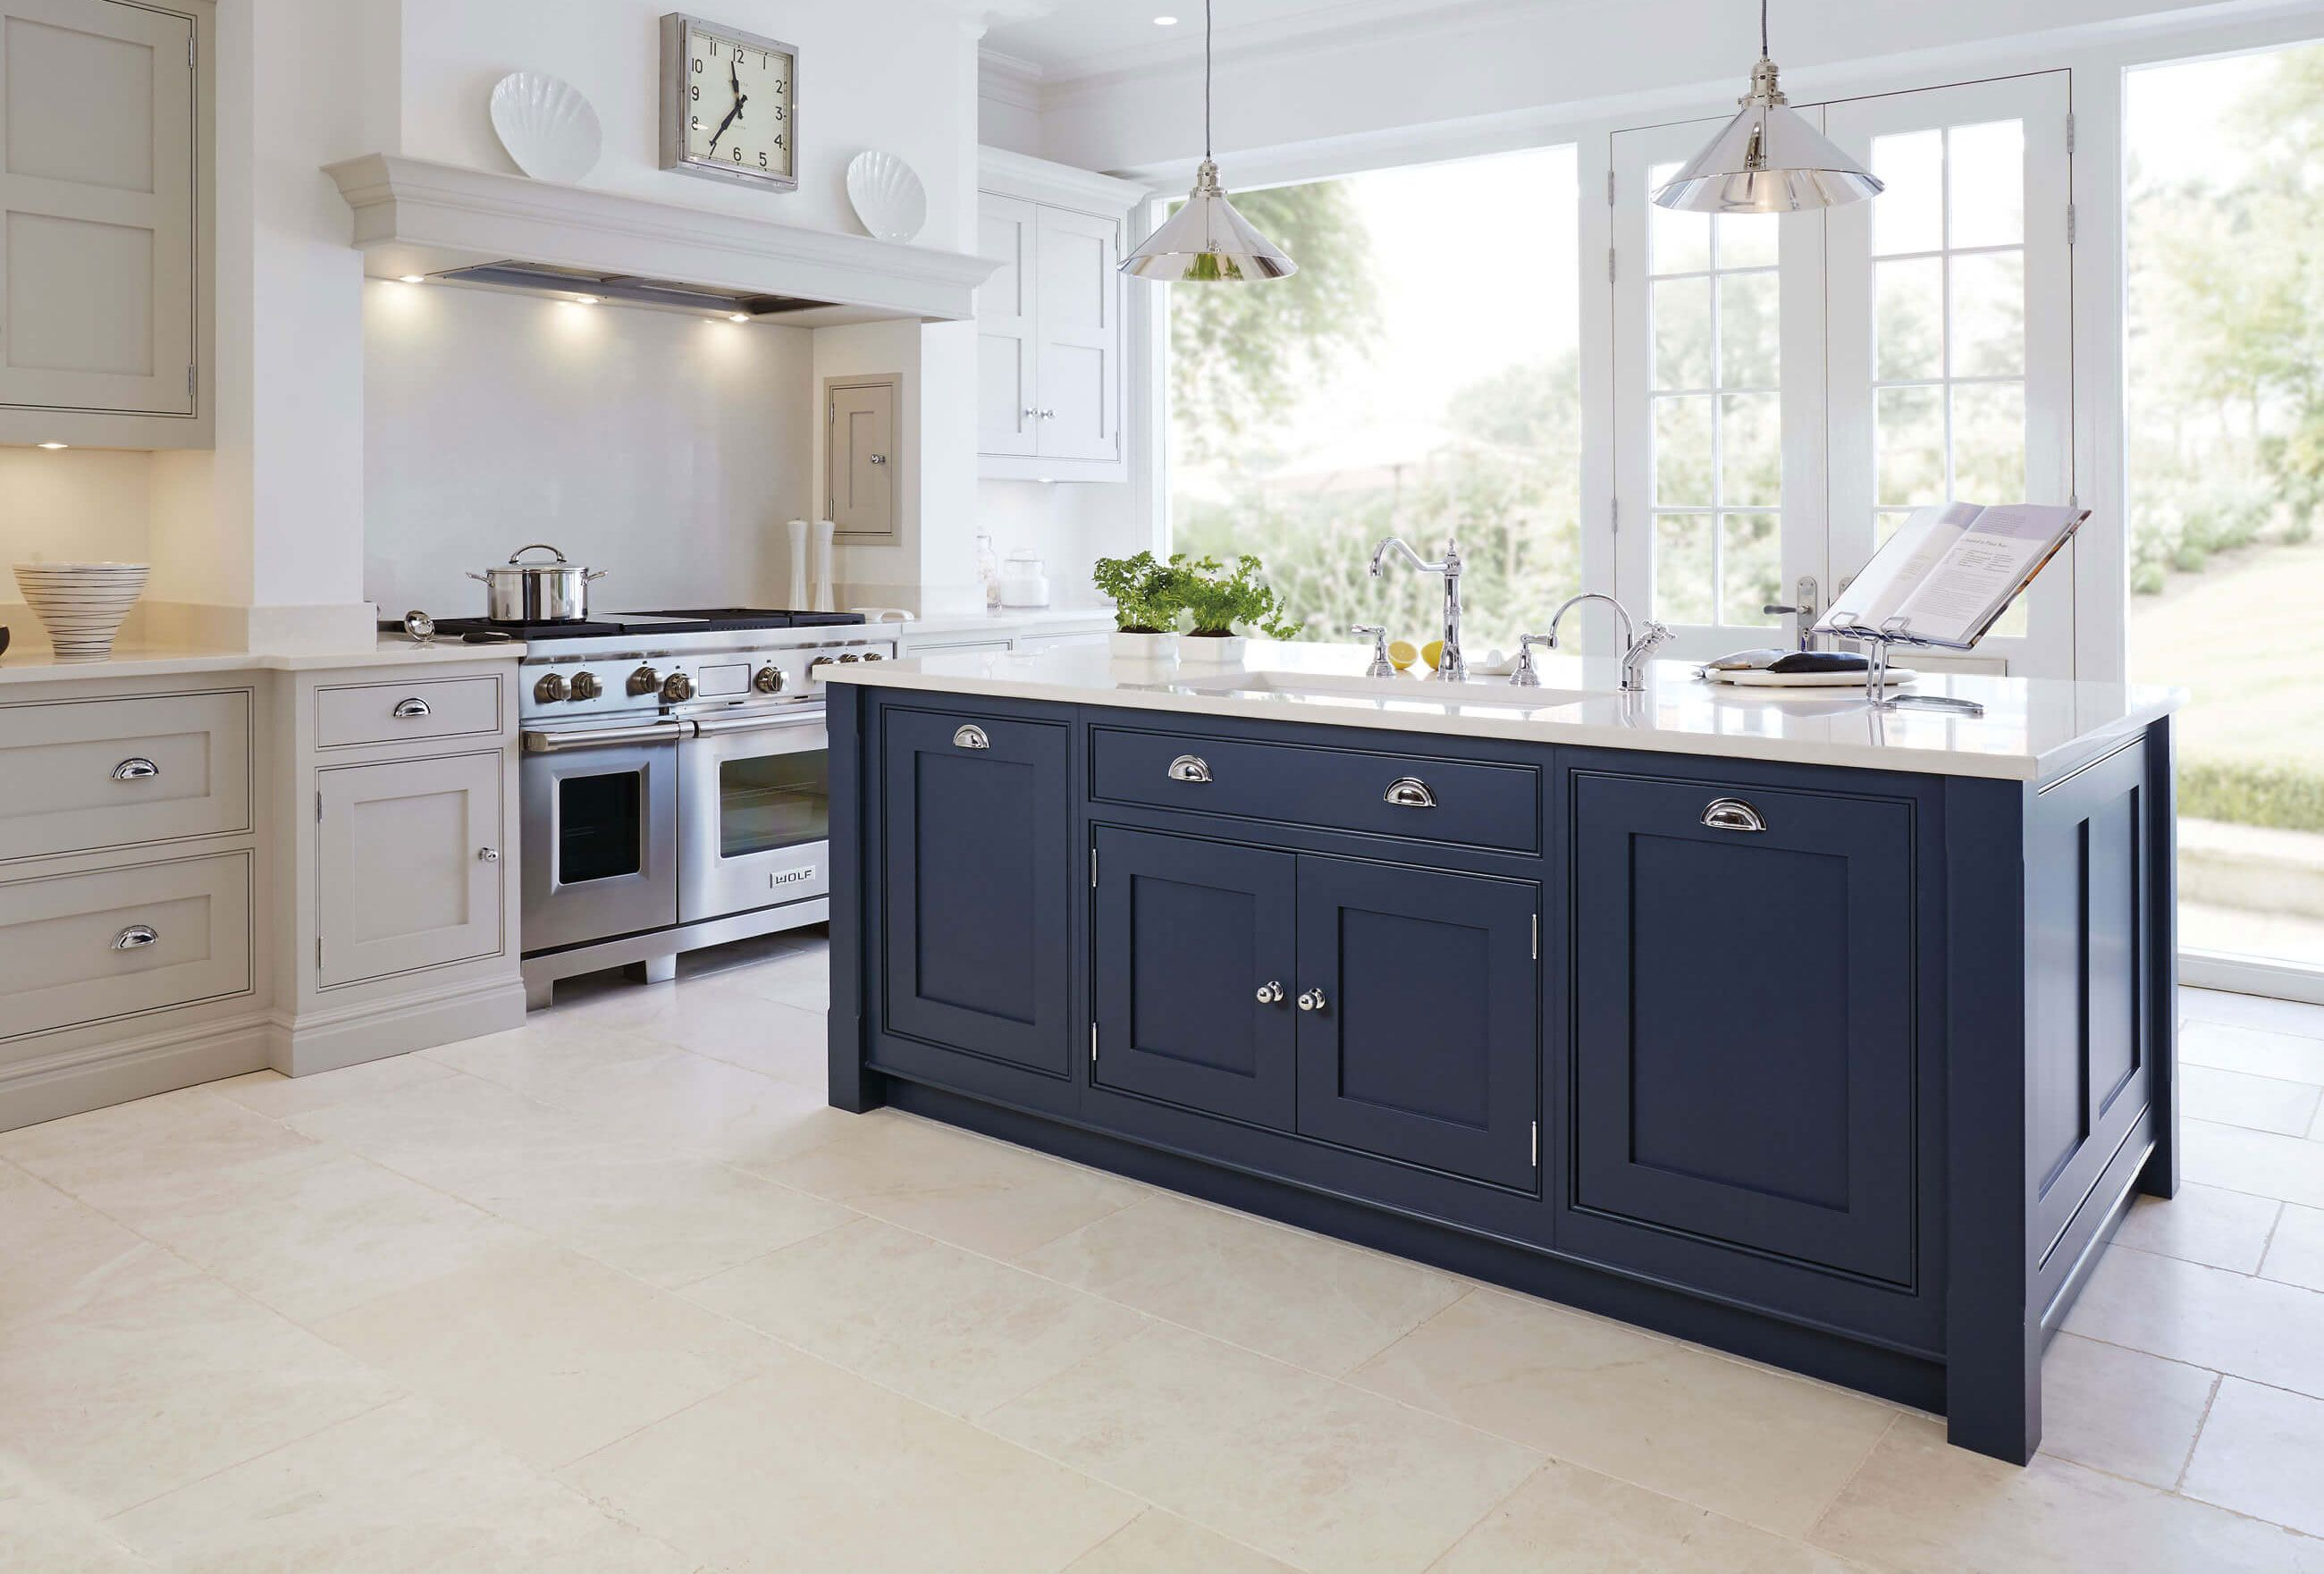 Best Kitchen Gallery: Luxury Blue Painted Kitchen With Feature Island With Full Length of Luxury Blue Kitchens on rachelxblog.com